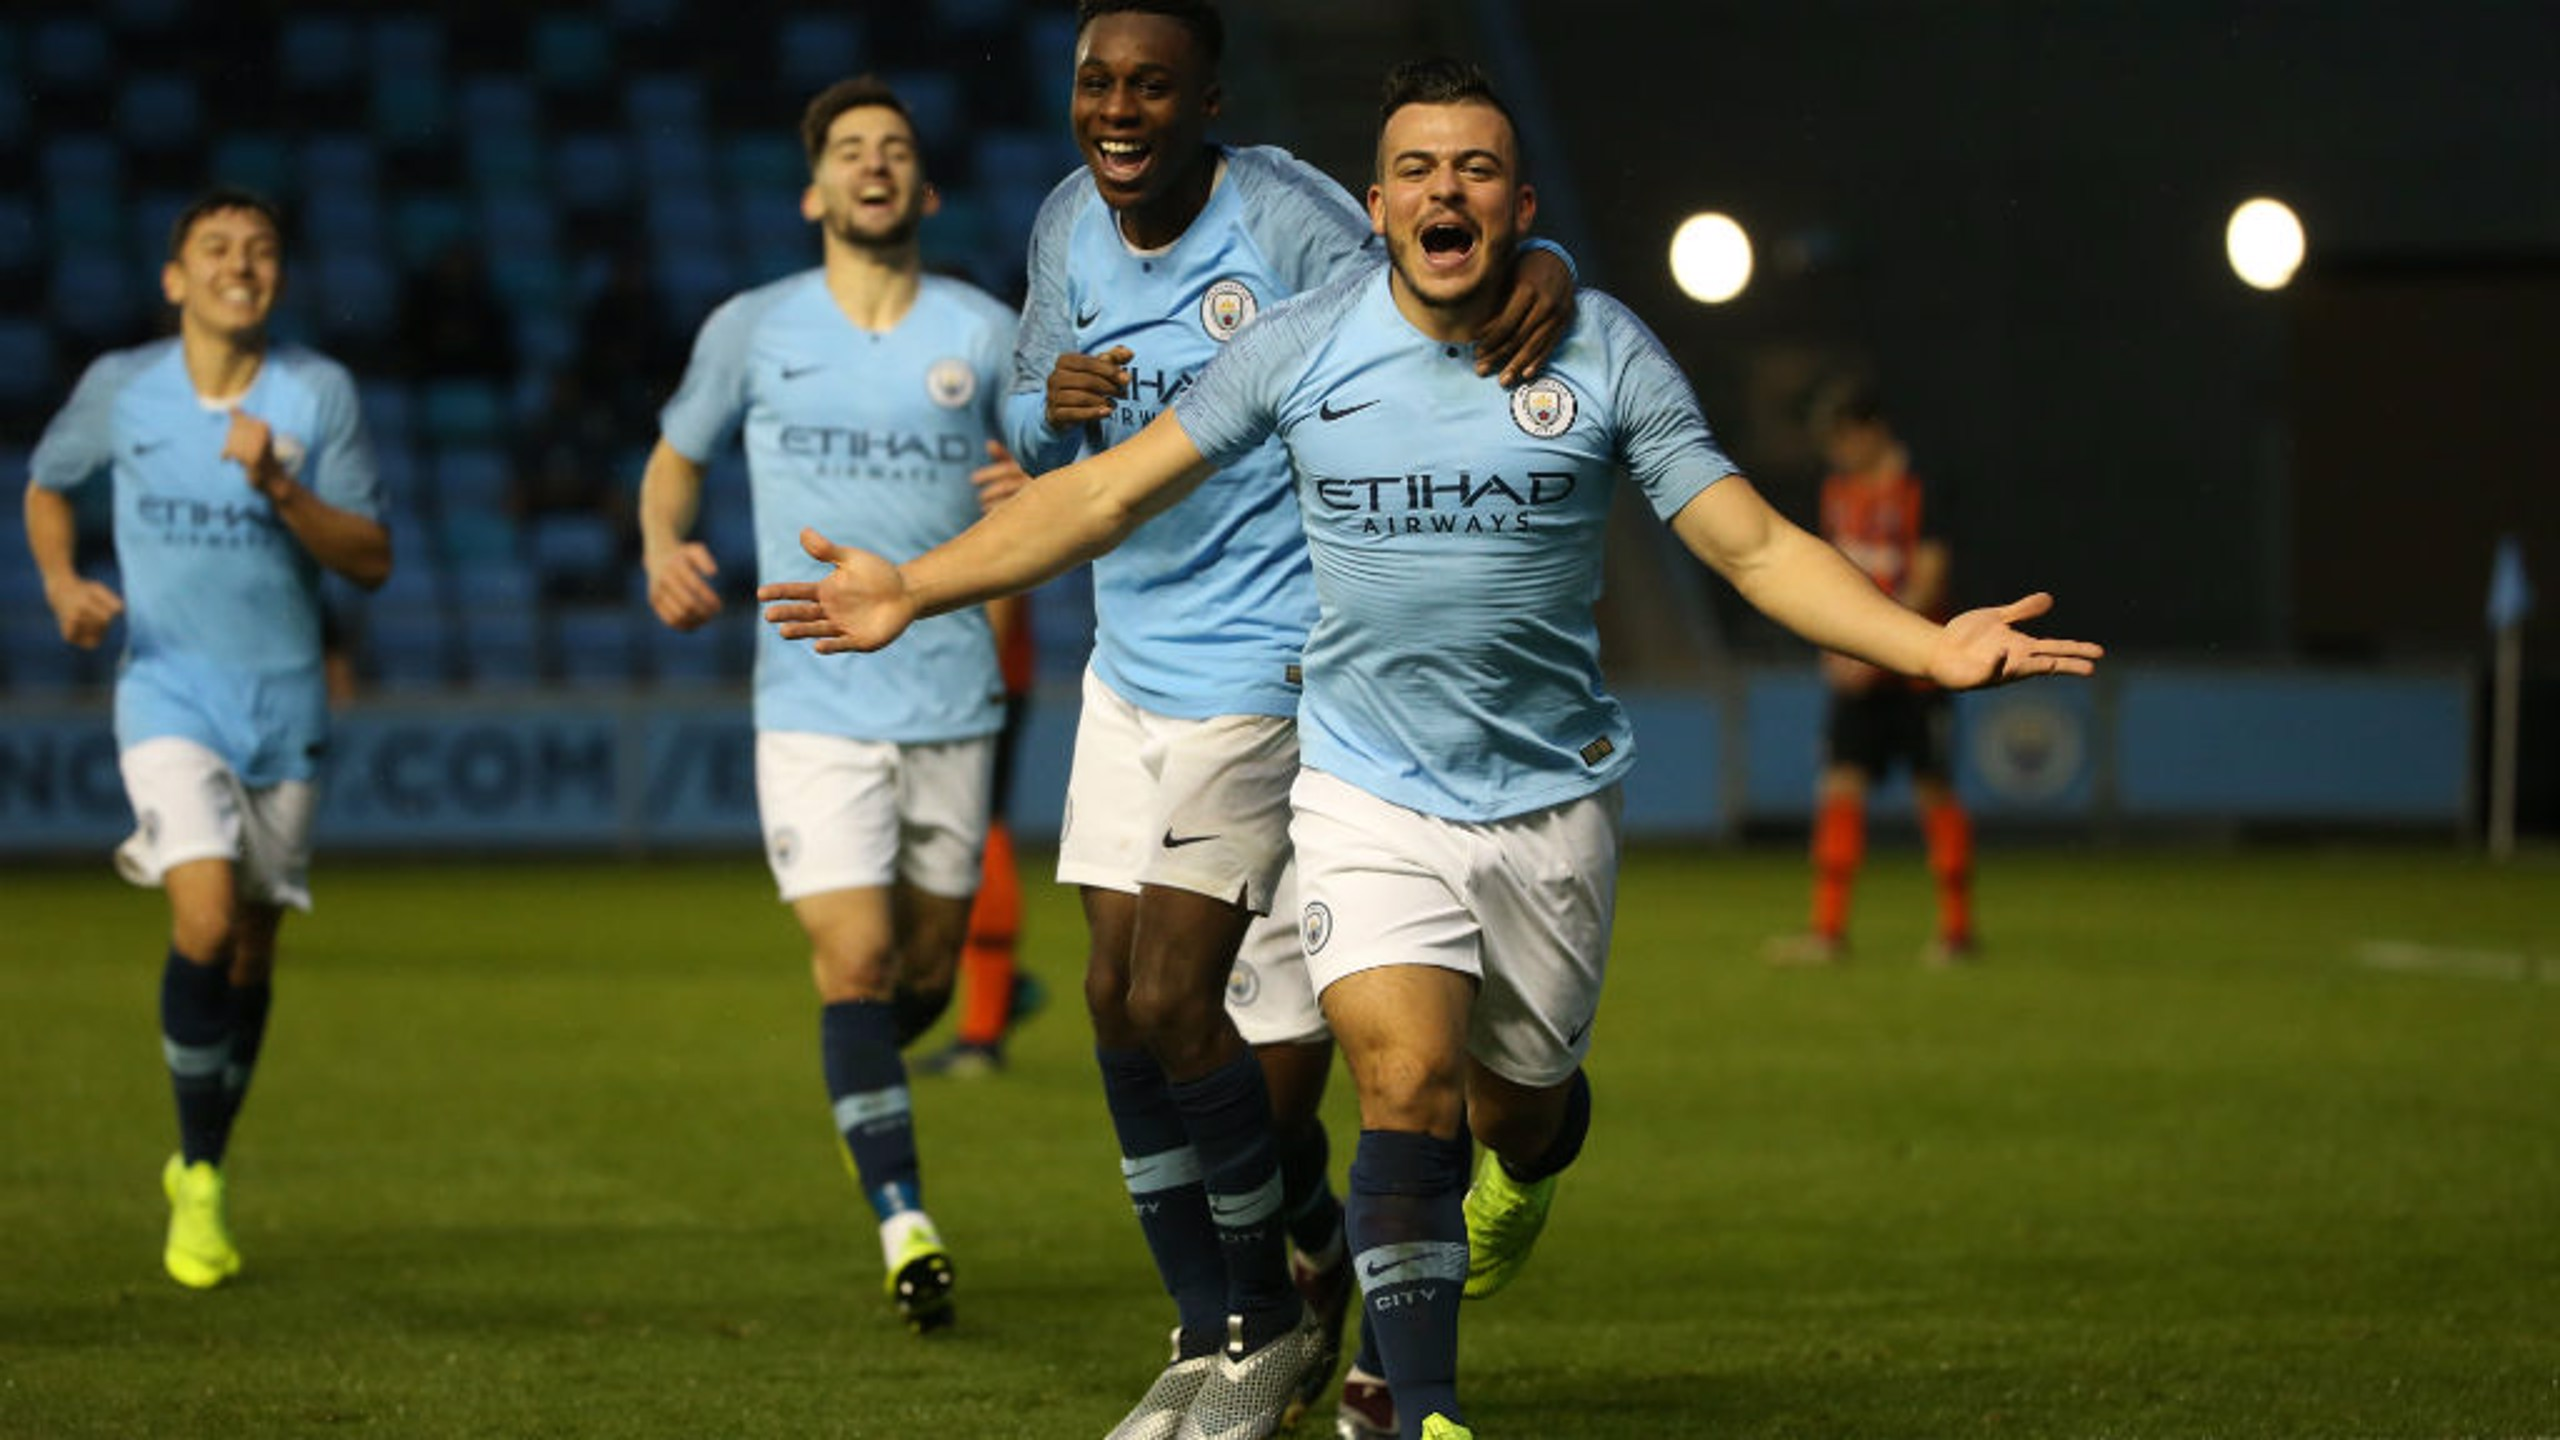 COMEBACK: City sealed their first Uefa Youth League win